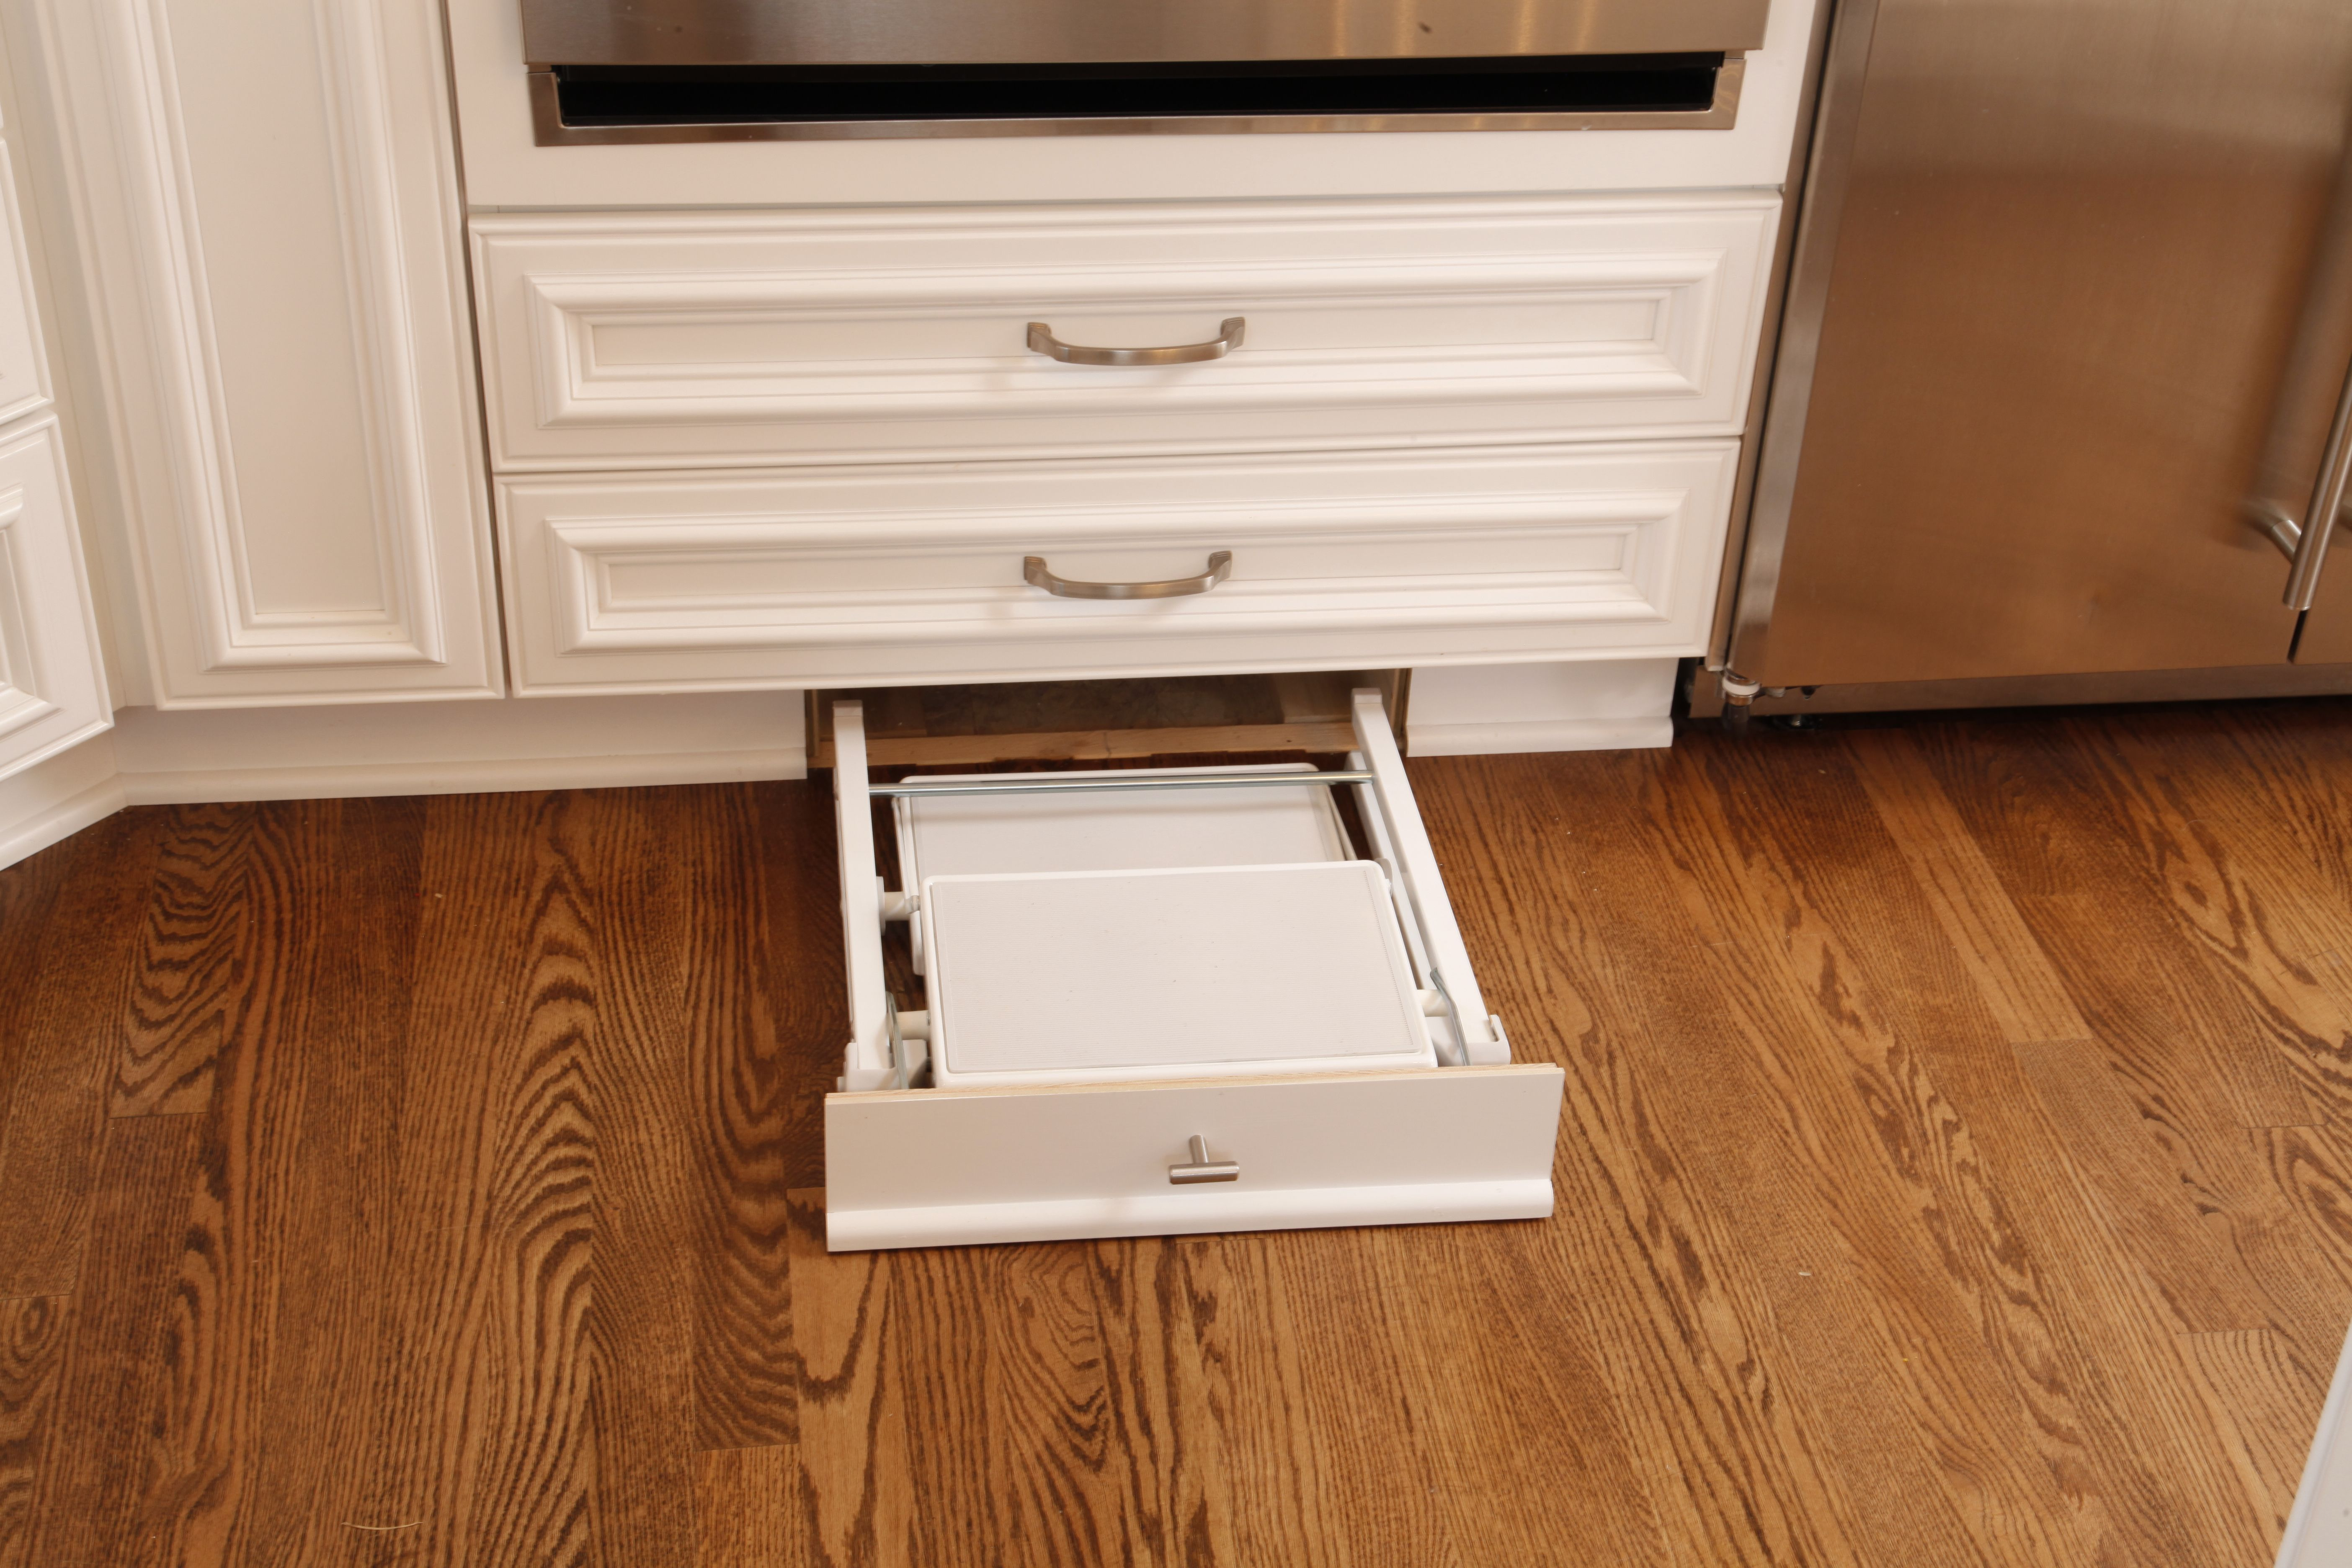 Toe Kick Step Stool That Unfolds And Wheels Around To Reach The Cabinets That Go To The C With Images Home Remodeling Contractors Home Remodeling Kitchen Cabinets Toe Kick